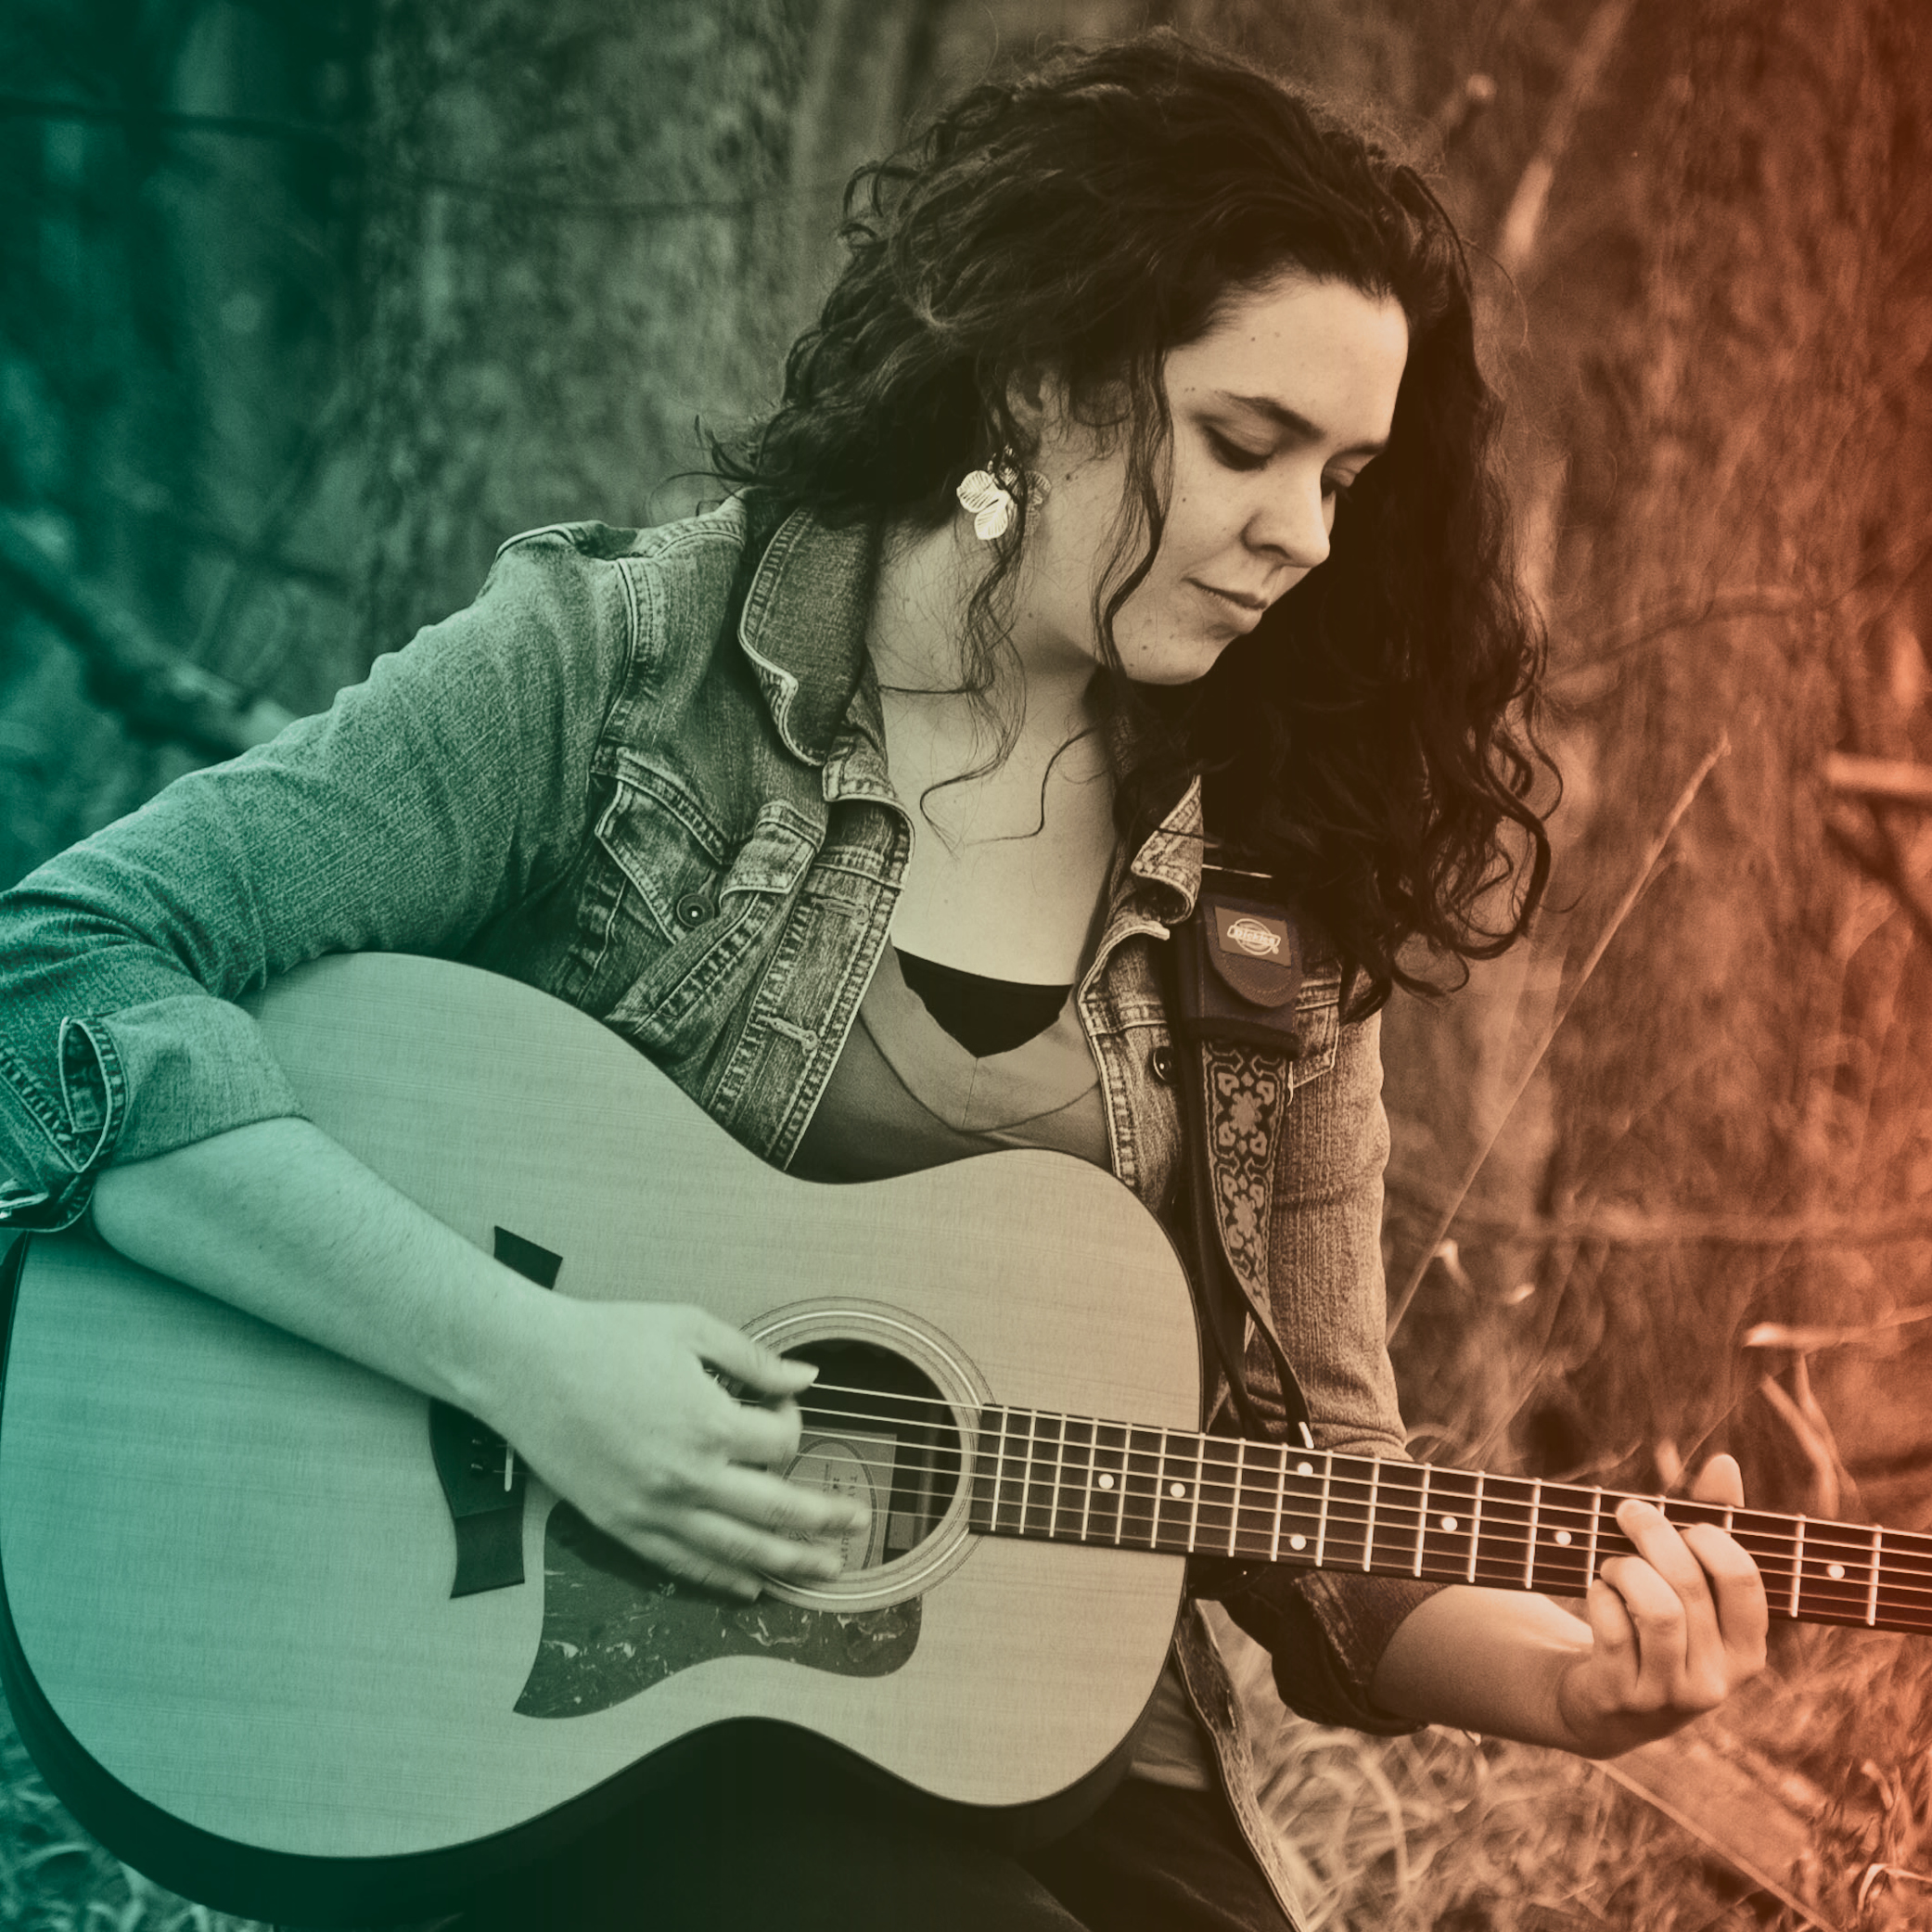 Kate Kooser  |  Saturday, September 14  |  	7:00-9:00 p.m.  |  Uncorked Allstar